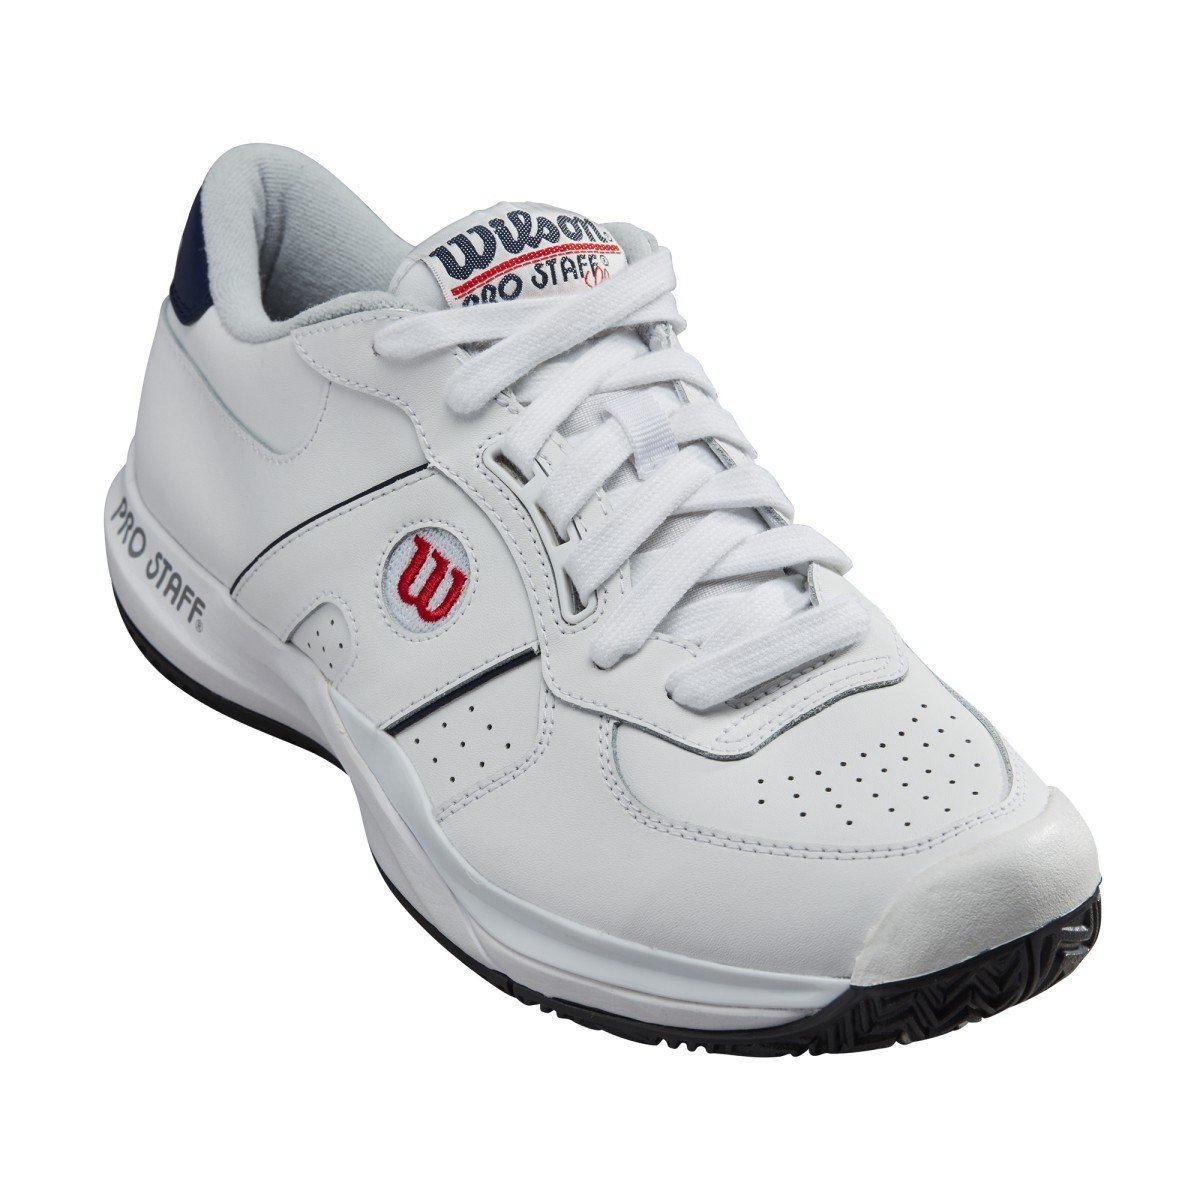 Wilson Tennis Shoes – Men's Pro Staff New York Edition